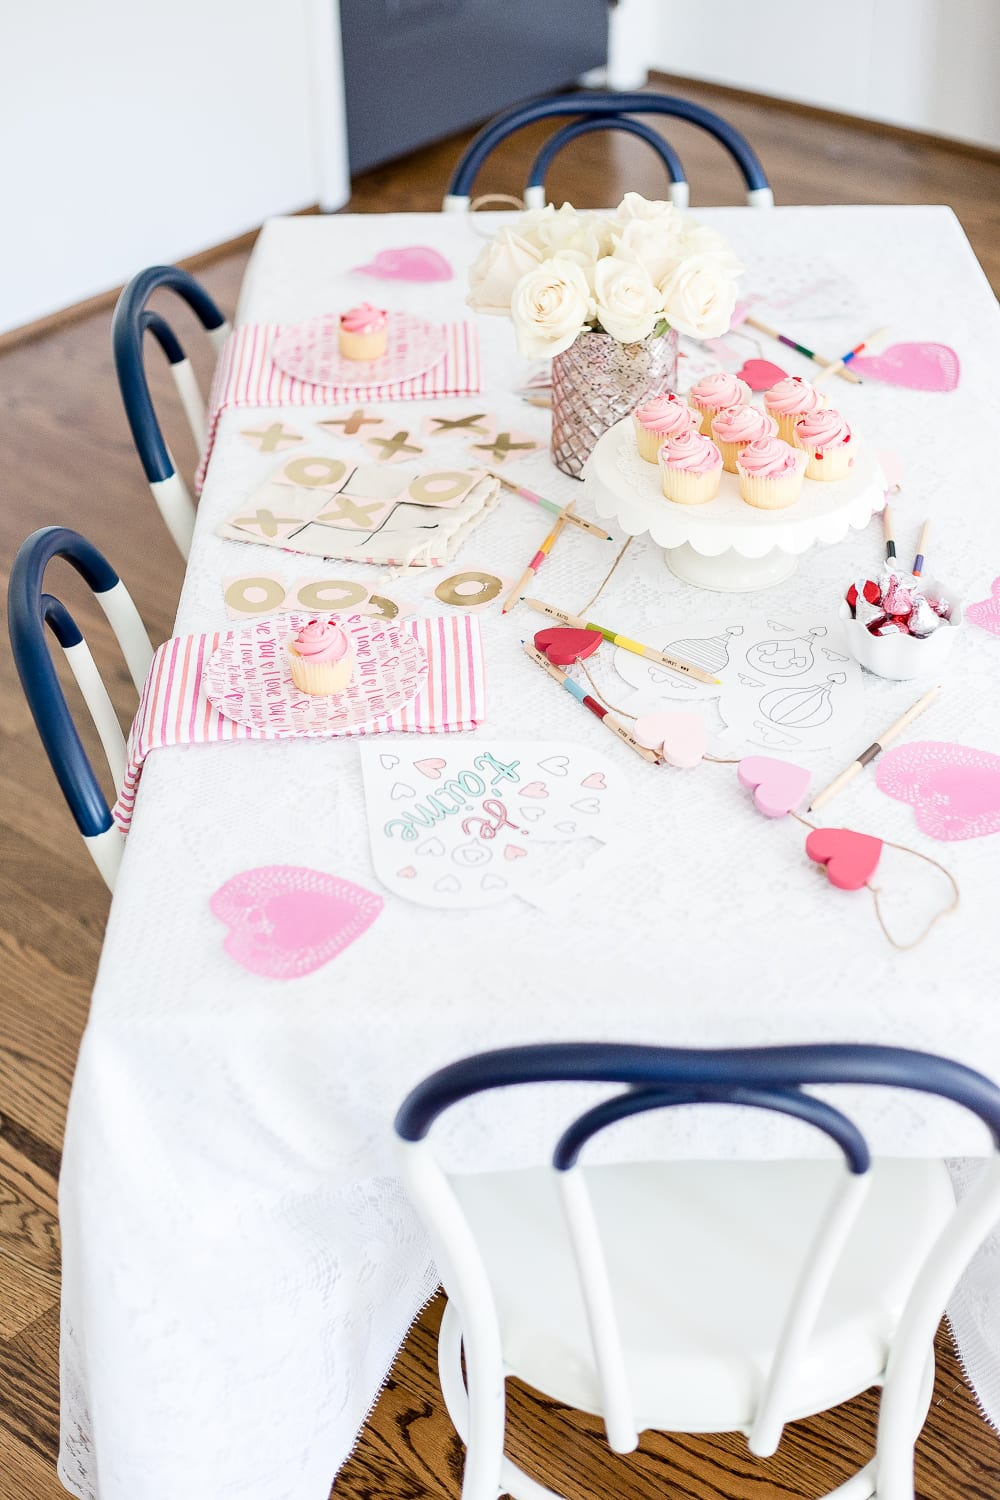 A Valentine's Day daddy daughter date using decor and activities from the Target Dollar Spot. #valentinesday #kidsdecor #kidsvalentines #valentinesdecor